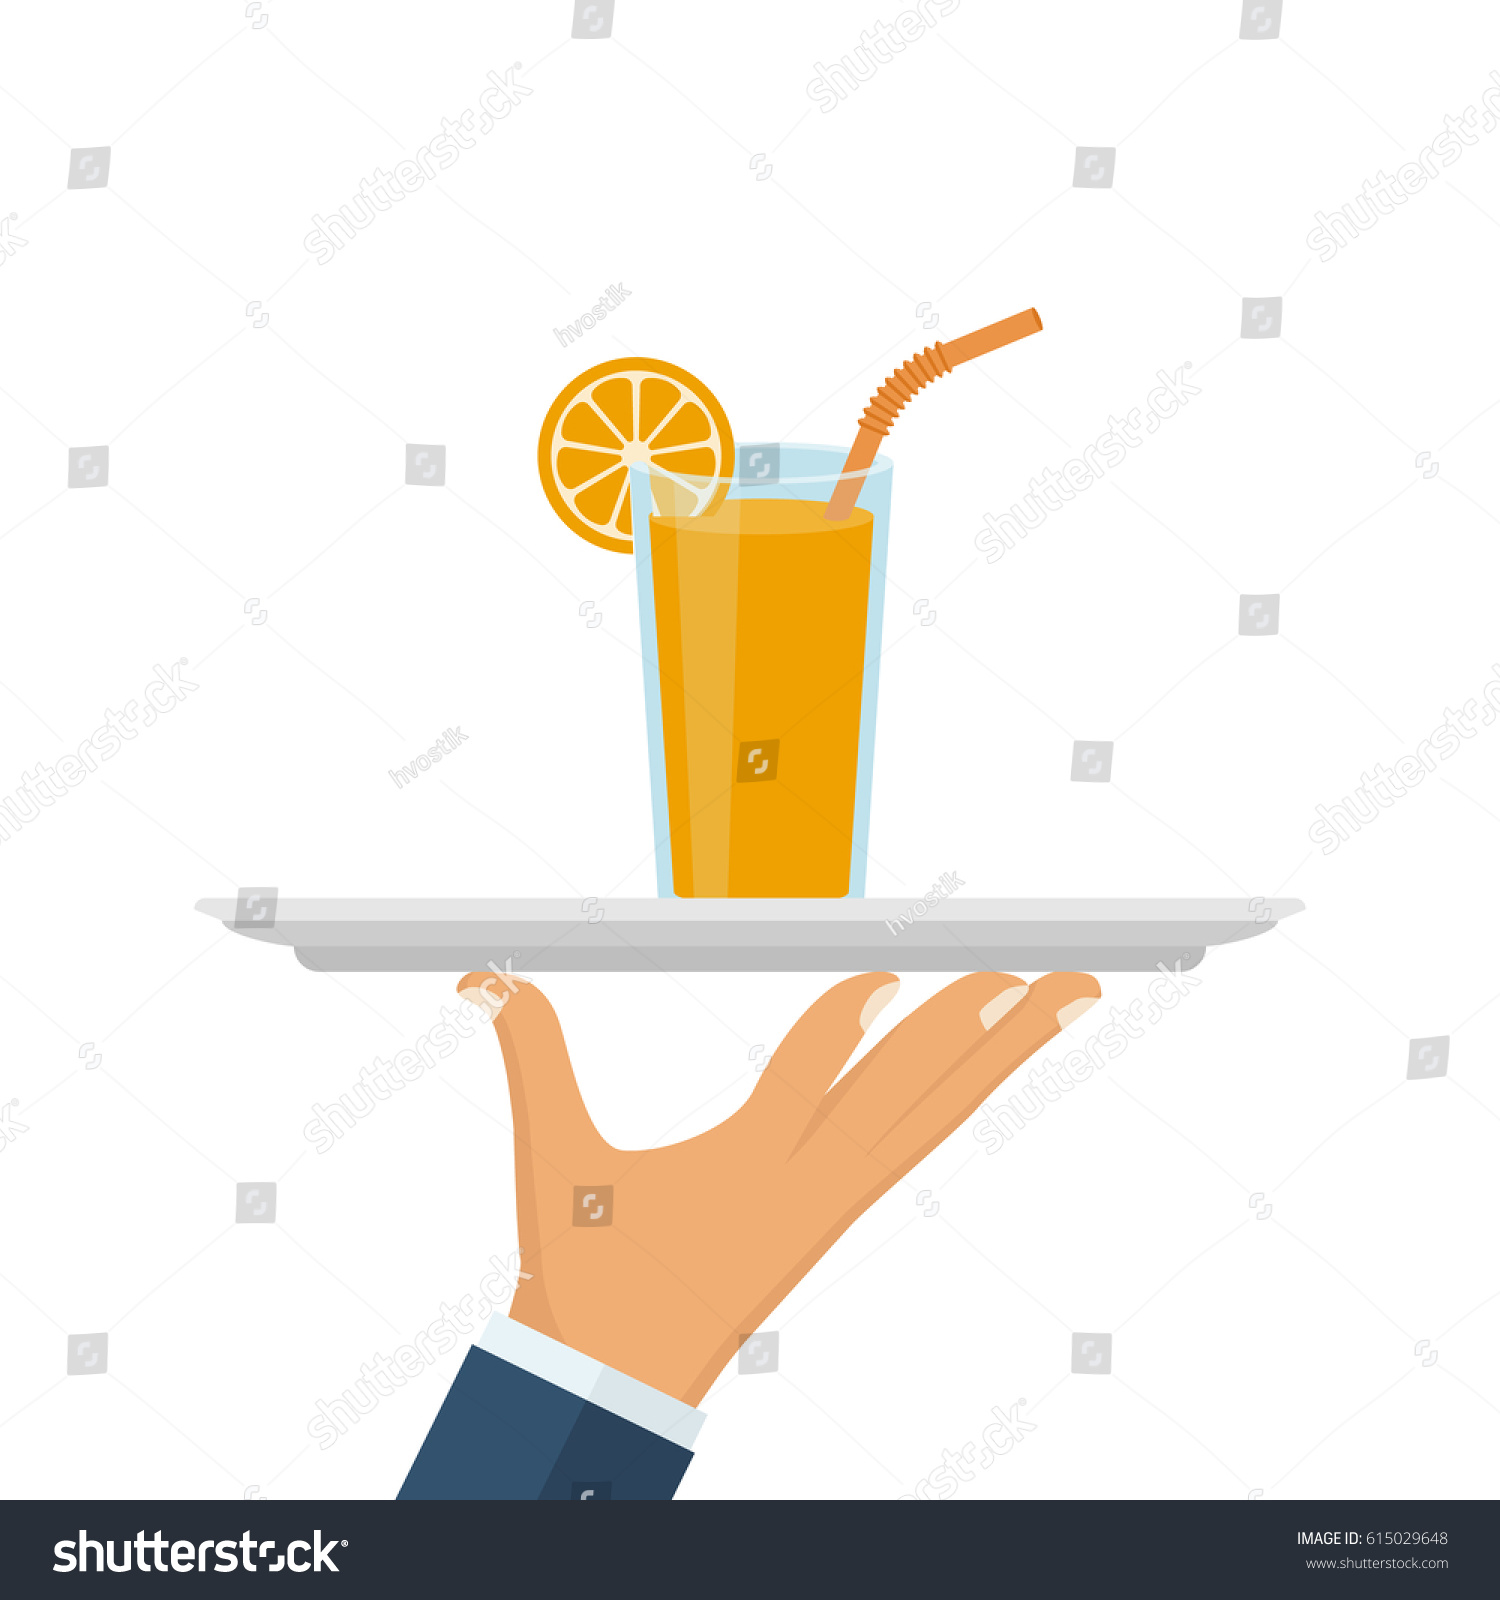 Glass juice cups design - Orange Juice In Glass Cup On Tray In Hand Of Waiter Vector Illustration Flat Design